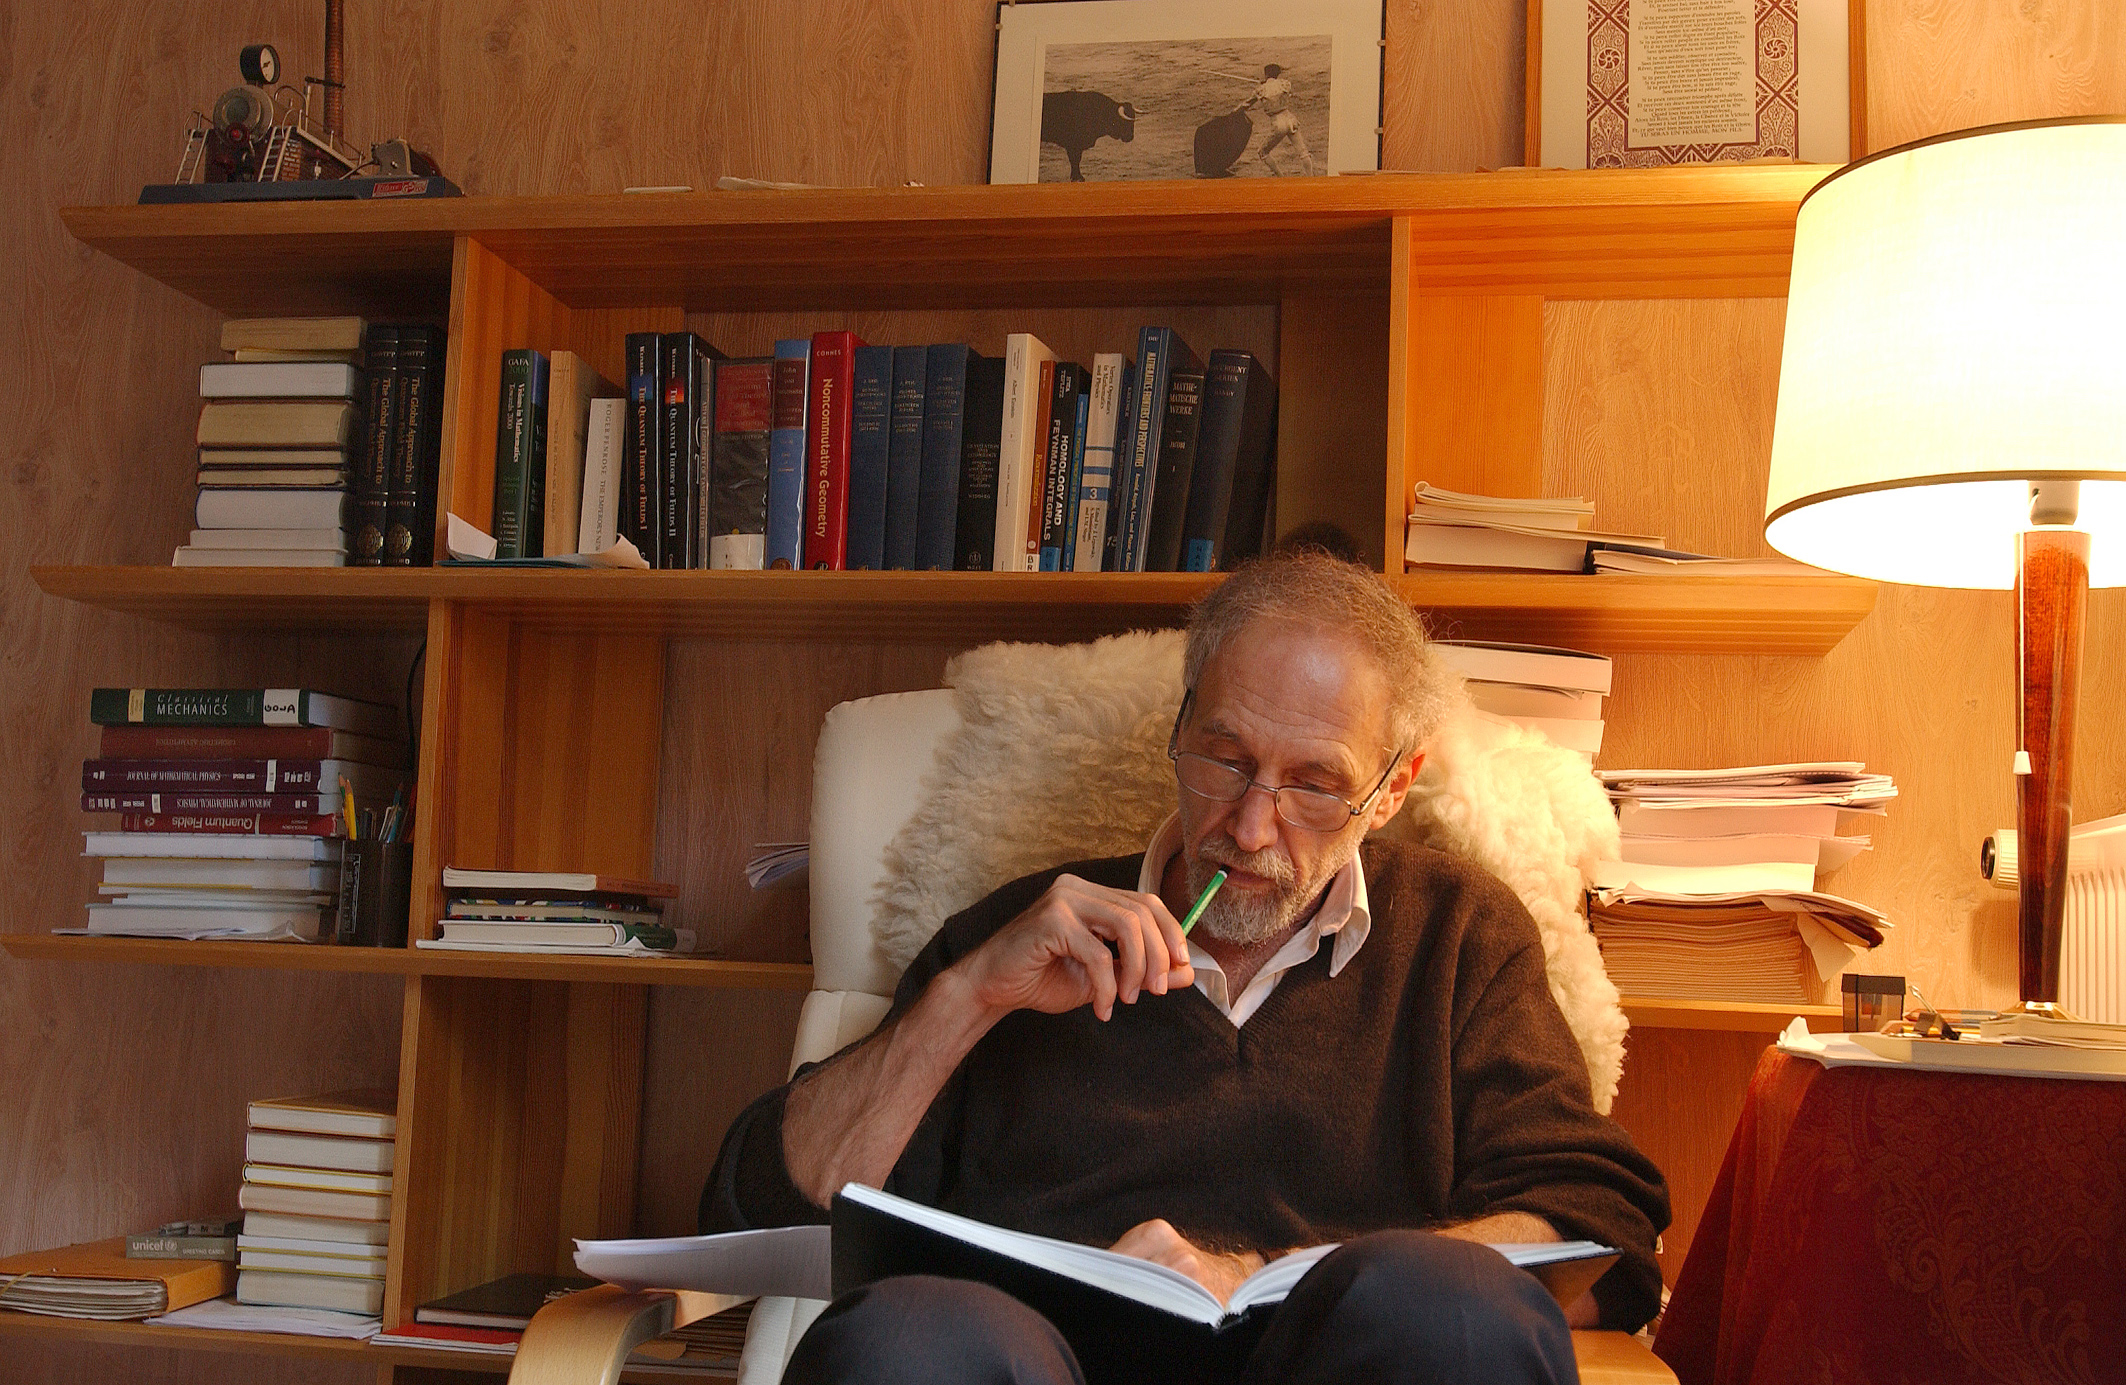 Photo showing Alain Connes working in an office